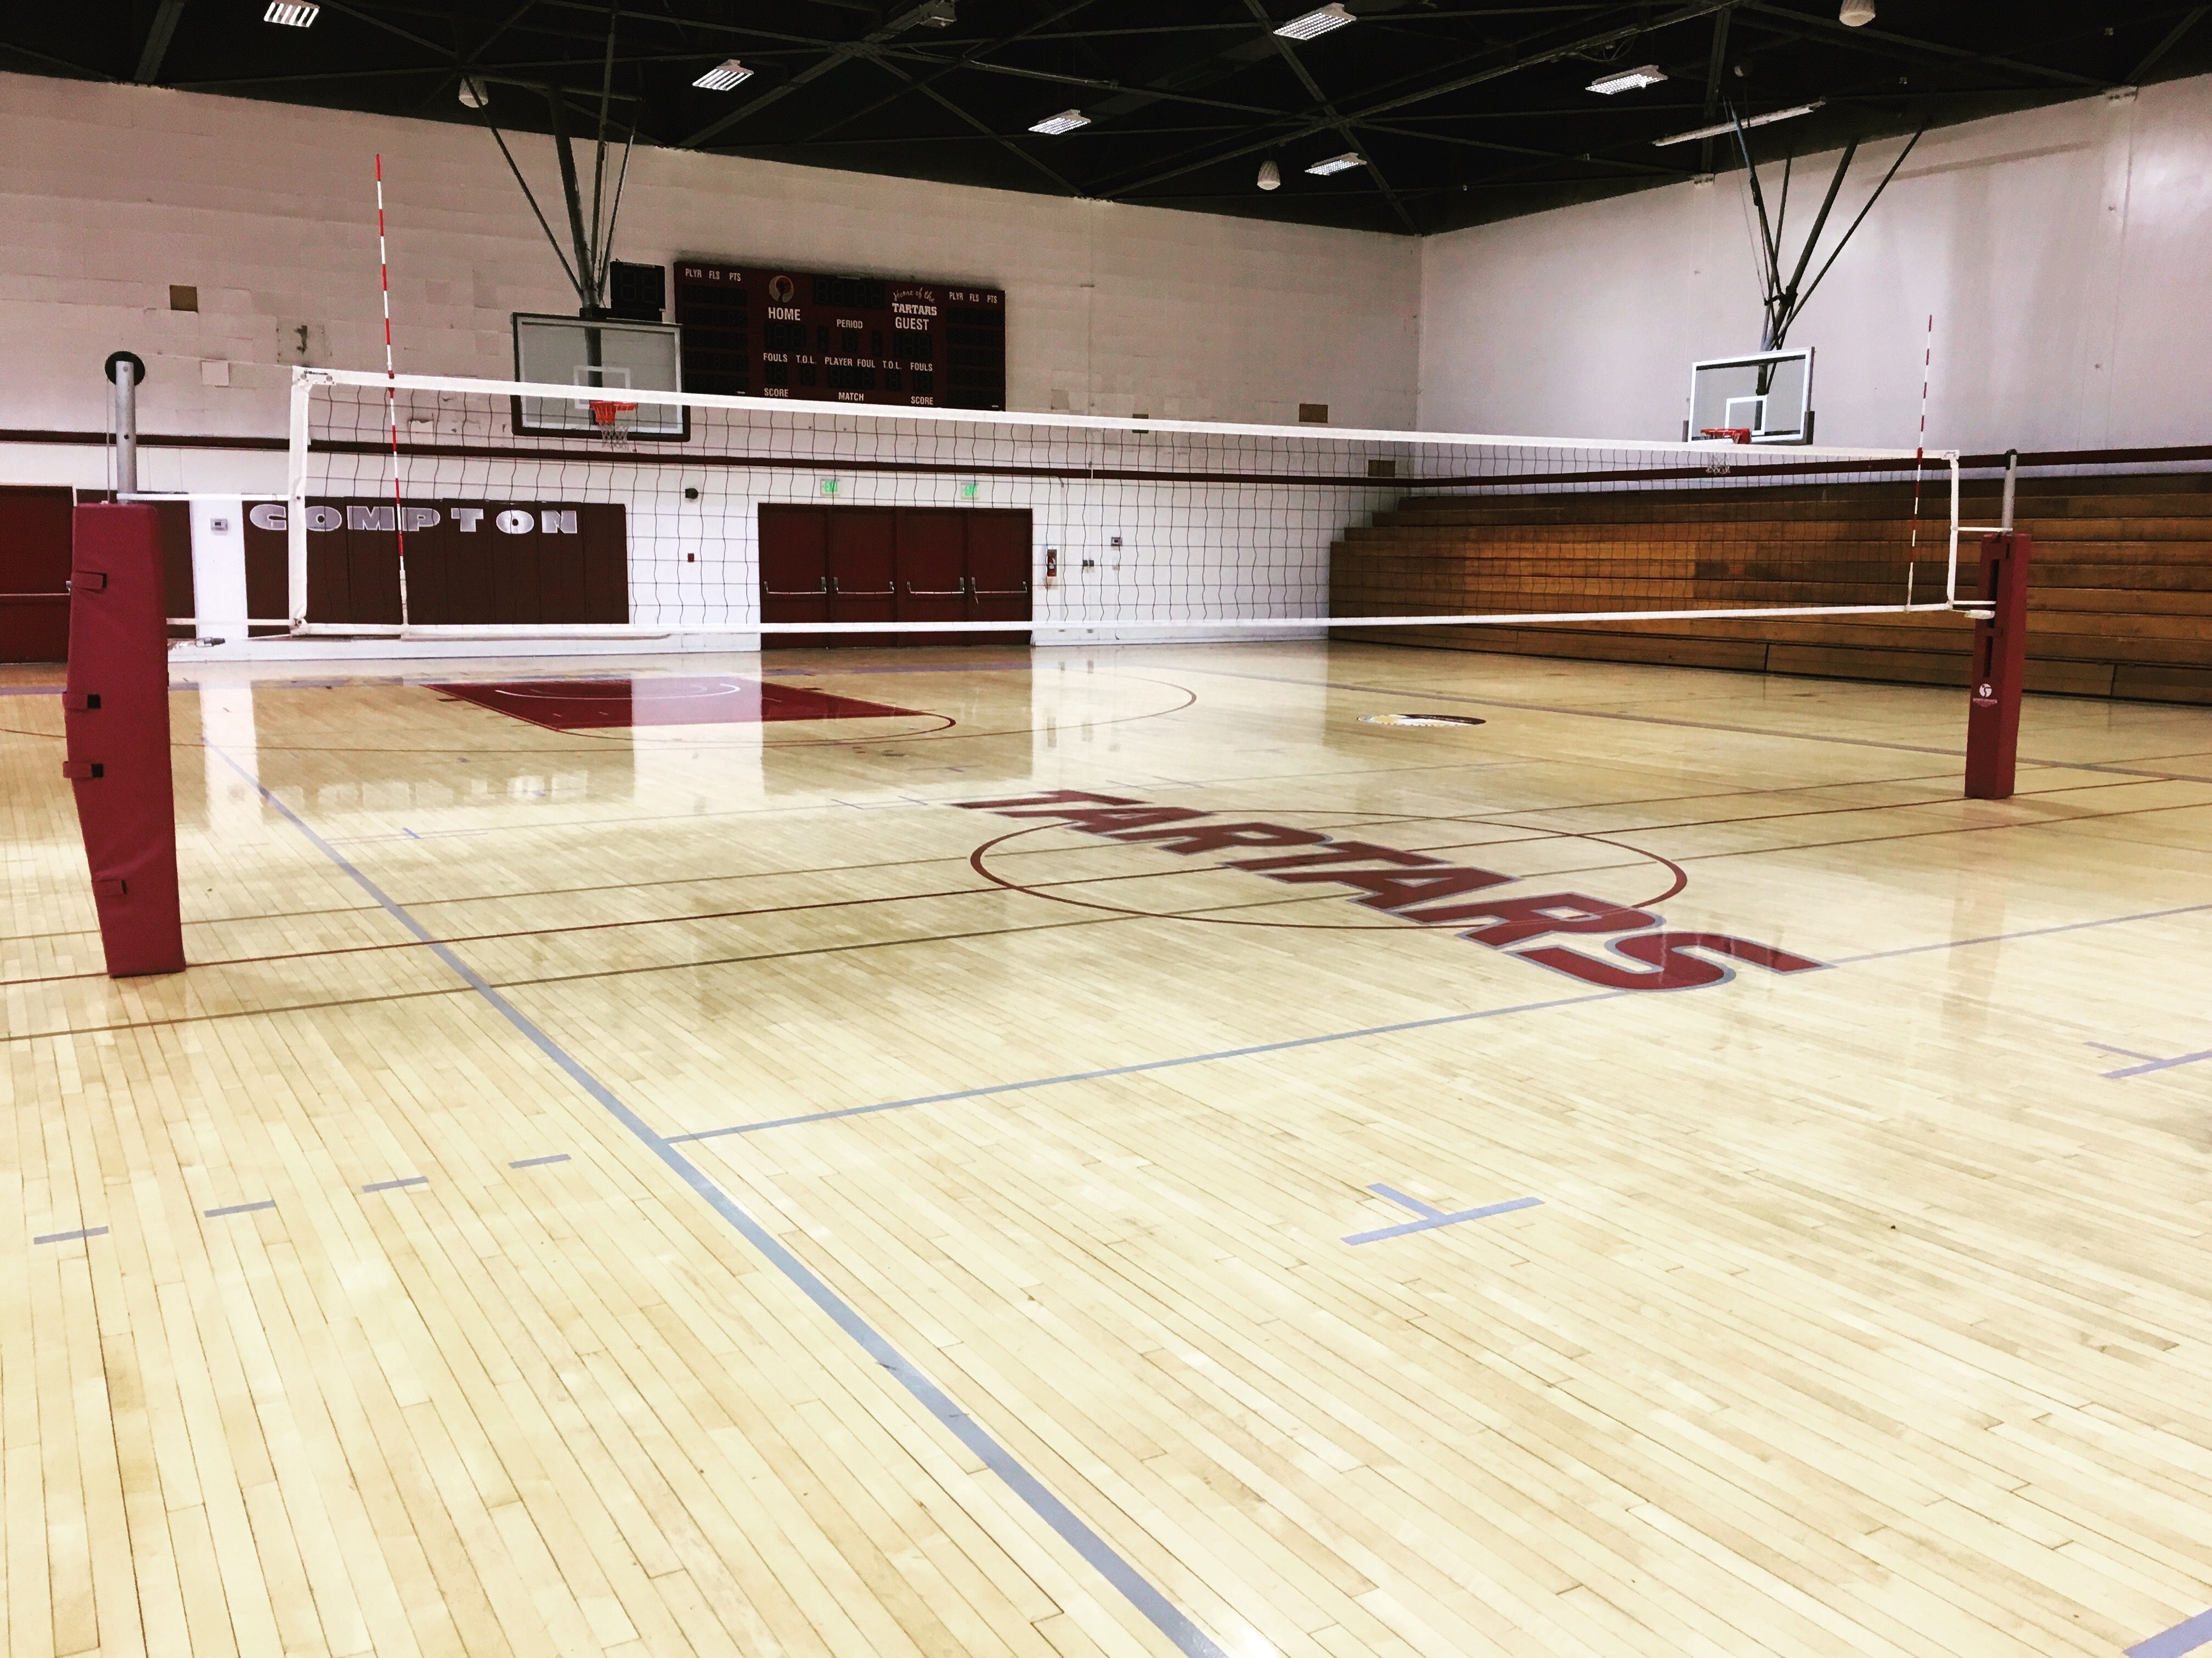 Carbon Volleyball Net System Volleyball Net Outdoor Volleyball Net Volleyball